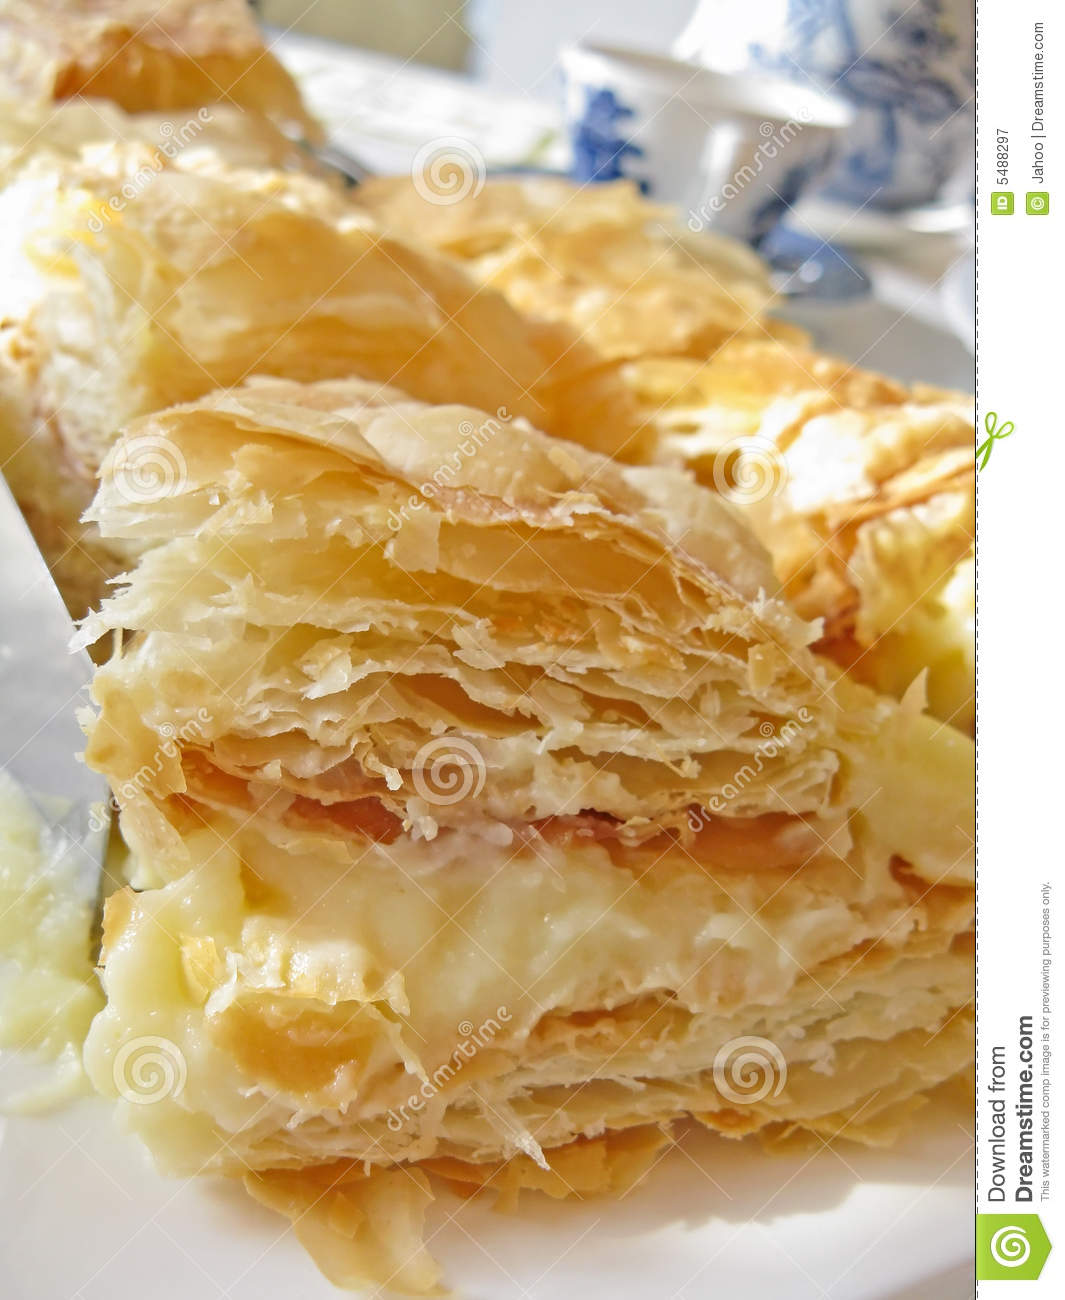 Pastry Clipart Puff Pastry With Cream #X0dKtP.